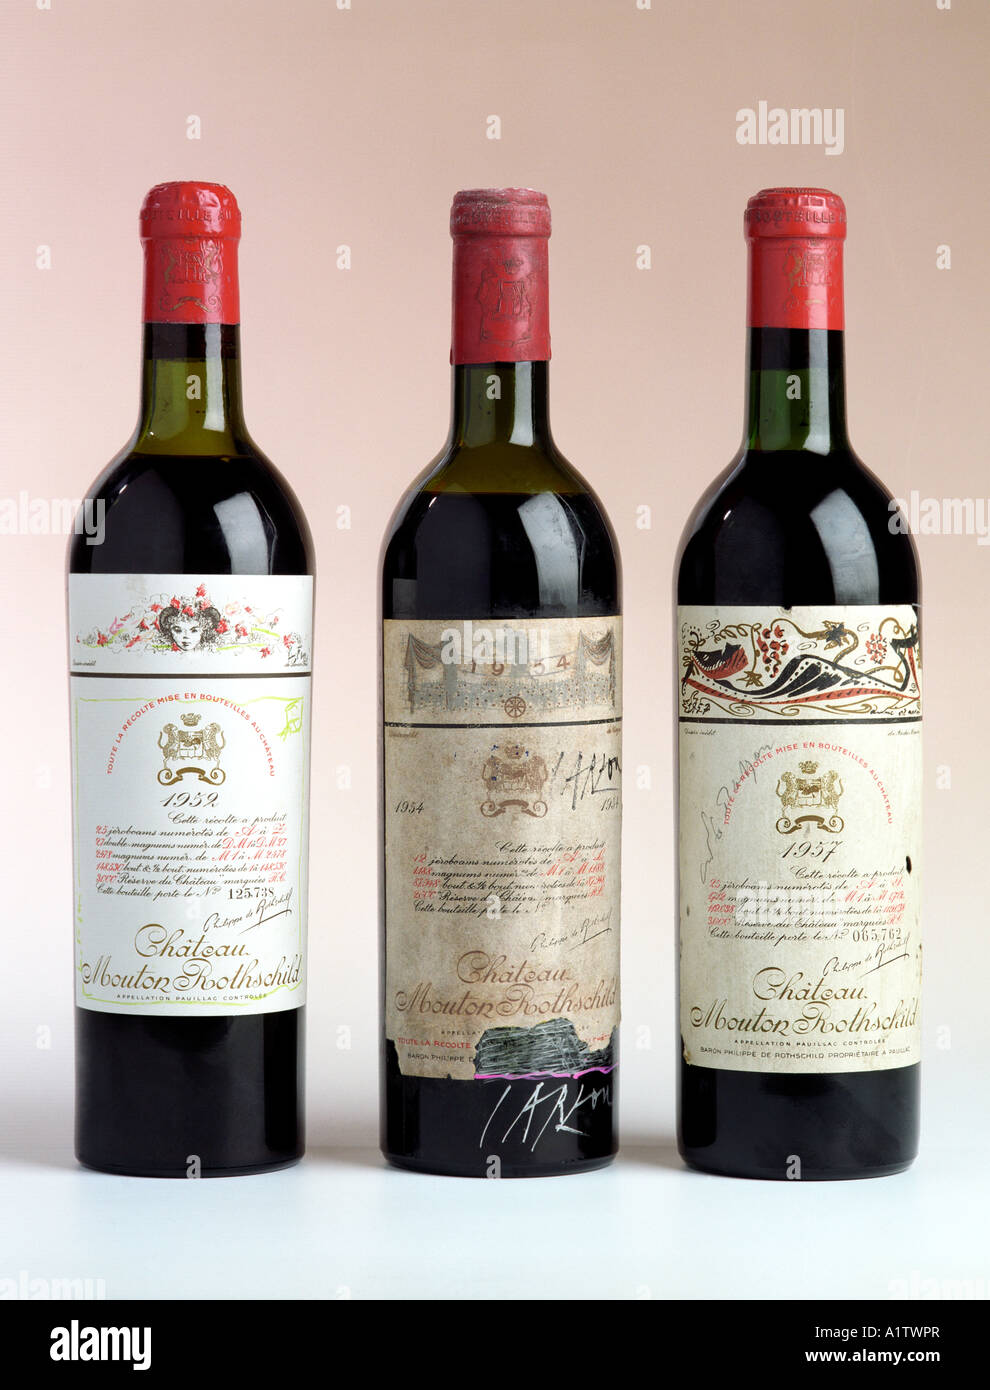 Rare bottles of Chateau Mouton Rothschild wine with labels and bottles painted by some of the great modern artists - Stock Image